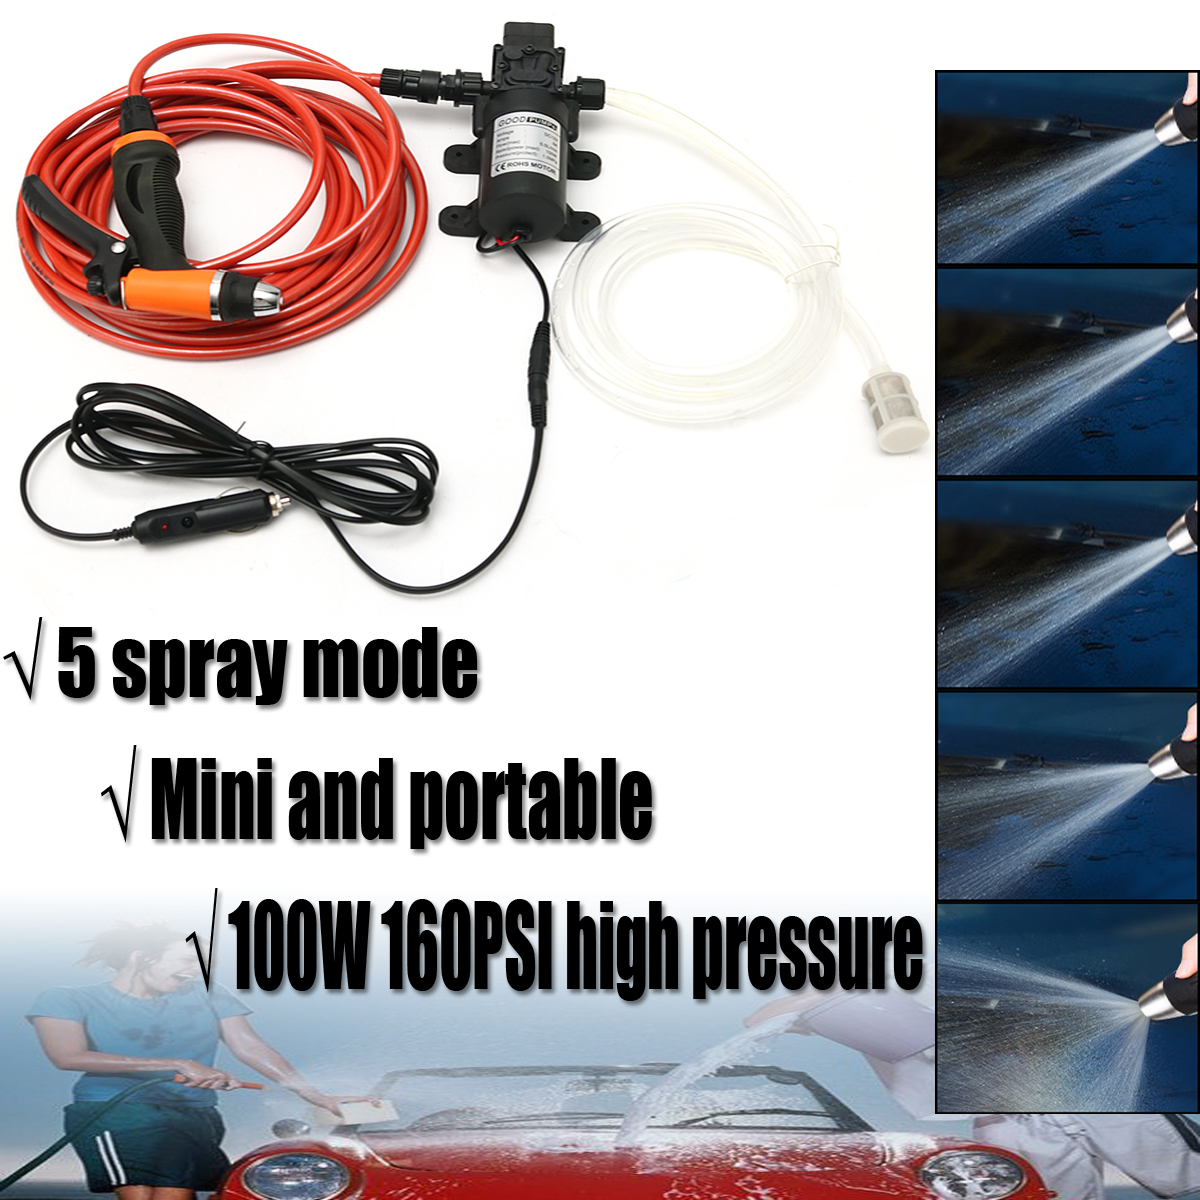 12v 100w 12v Portable 100w 160psi High Pressure Car Electric Washer